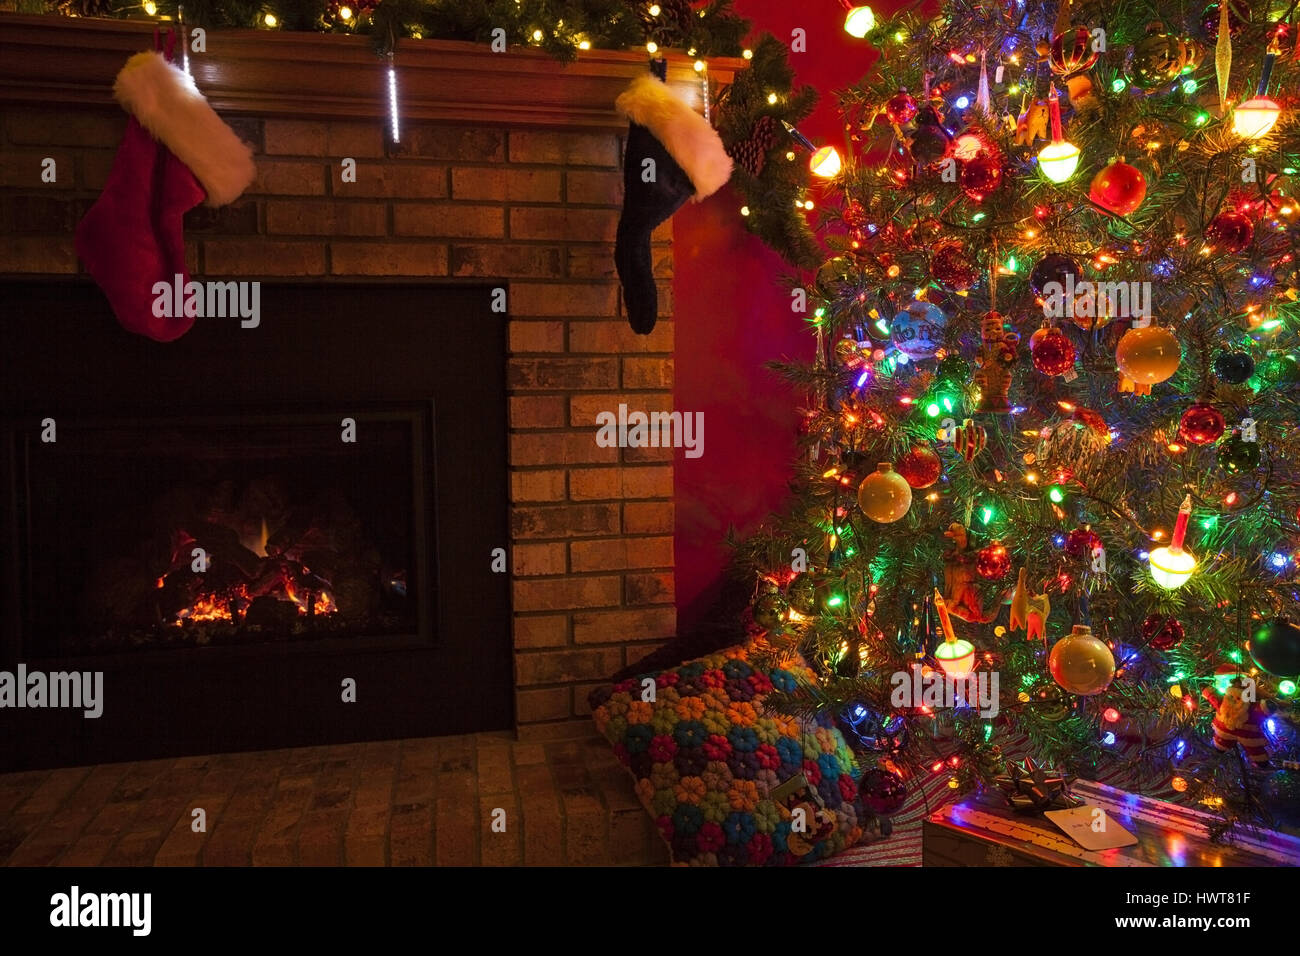 images of christmas fireplace ornament with stockings all can